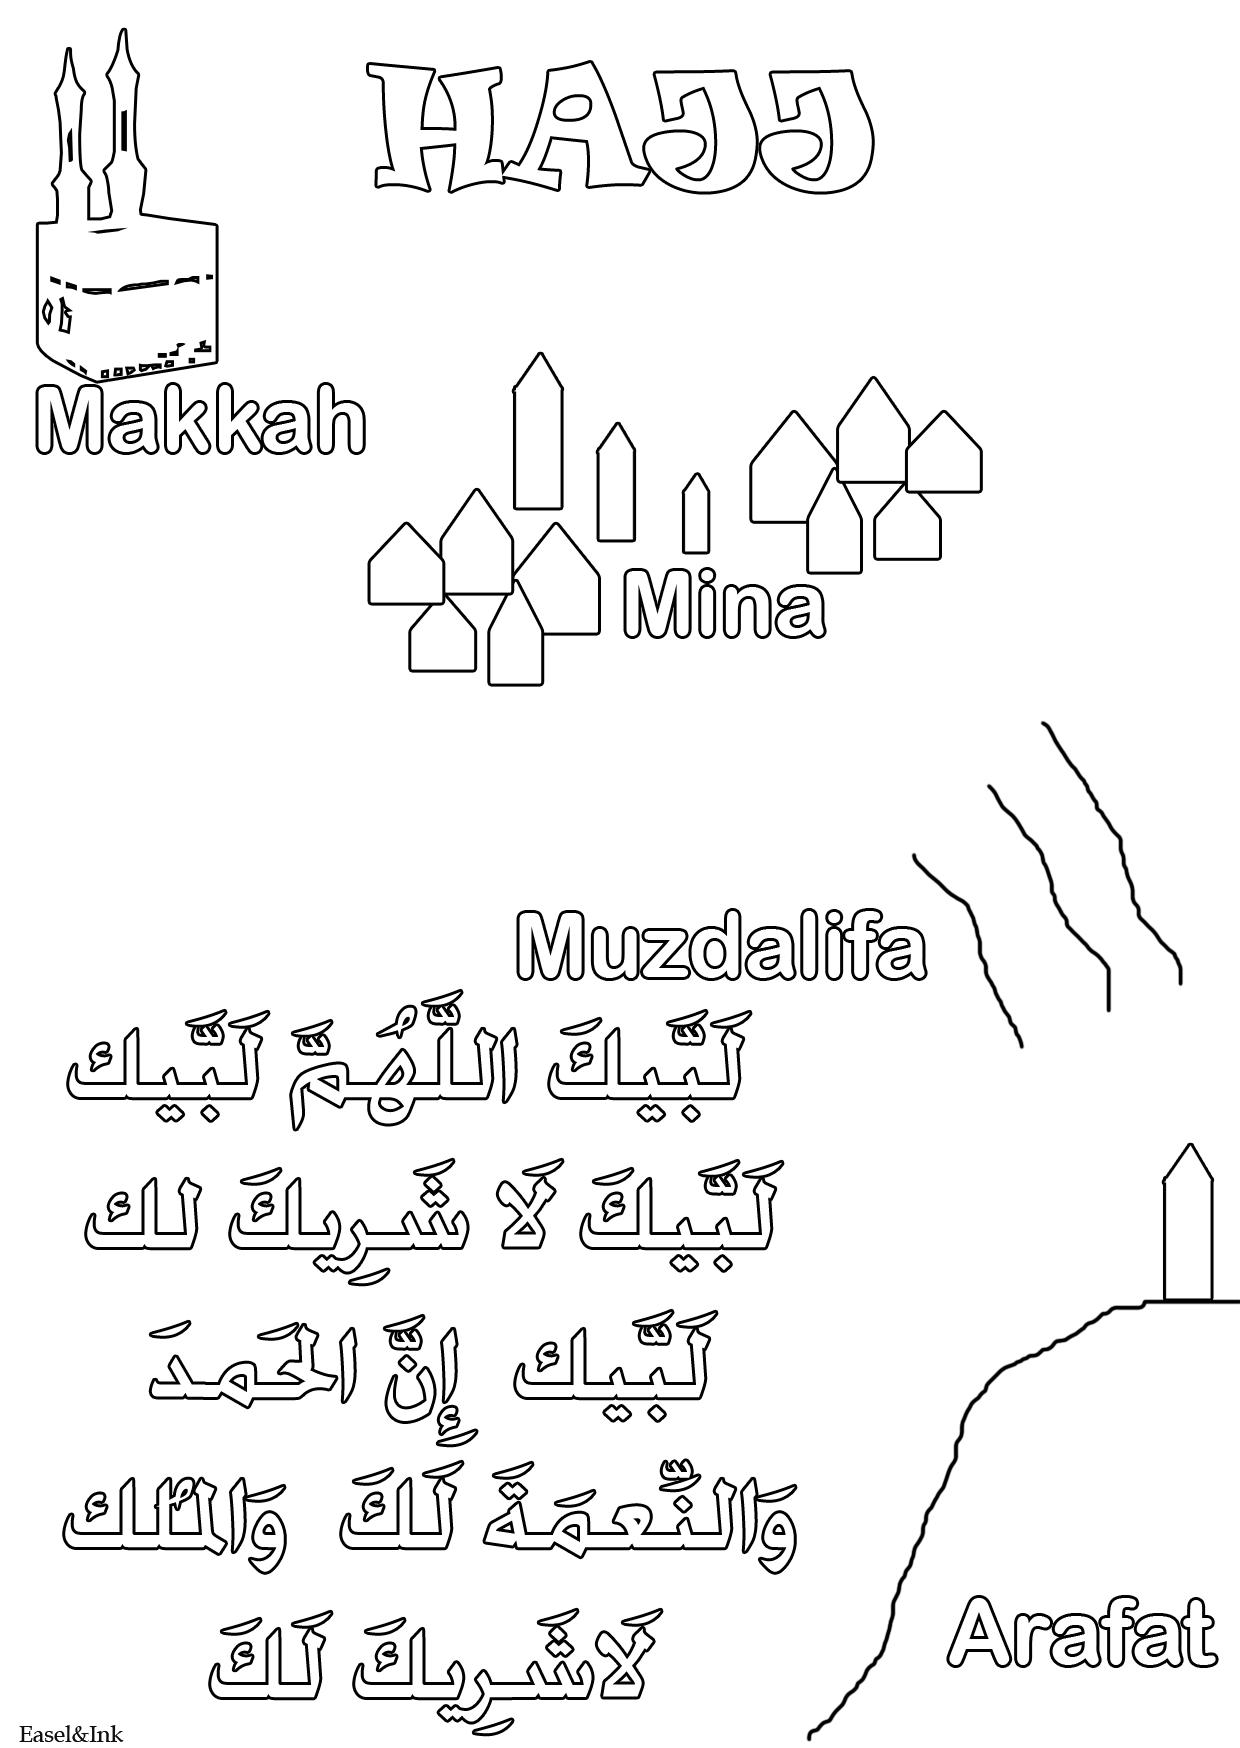 Basic Duas For Children Coloring Pages Easelandink